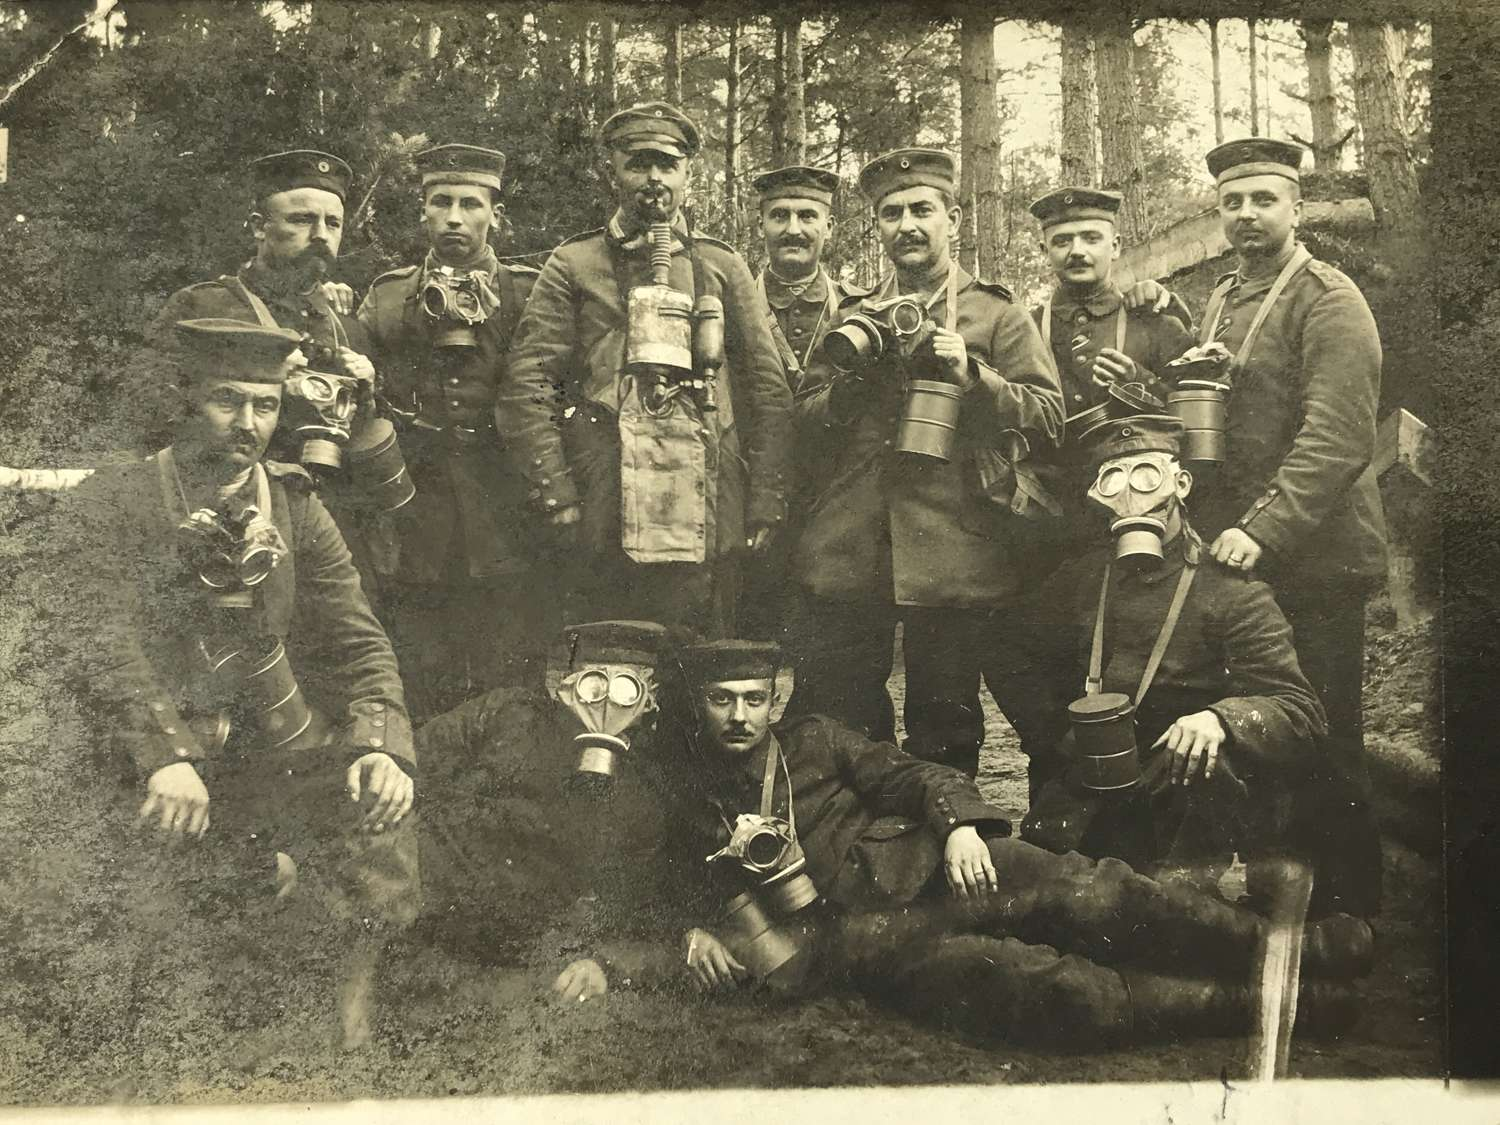 Germans soldiers Posing in gas masks dated 1916